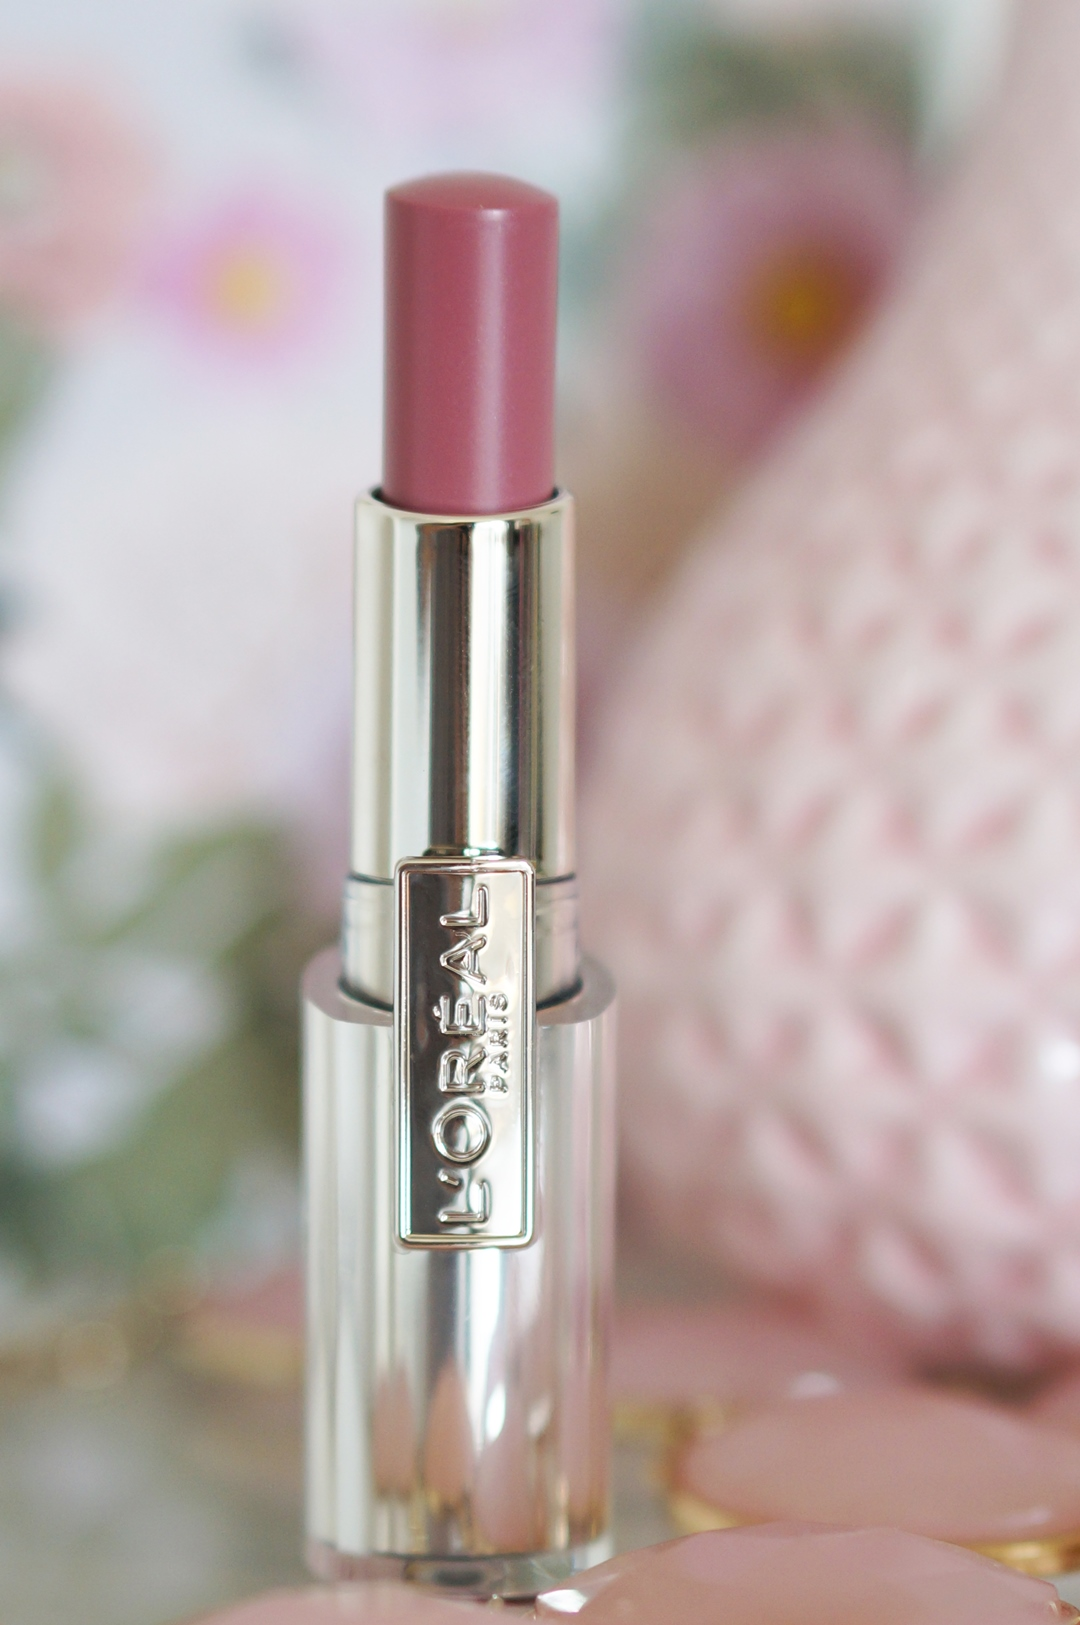 Lóreal-caresse-101-tempting-lilac-lipstick-review-swatches (5)